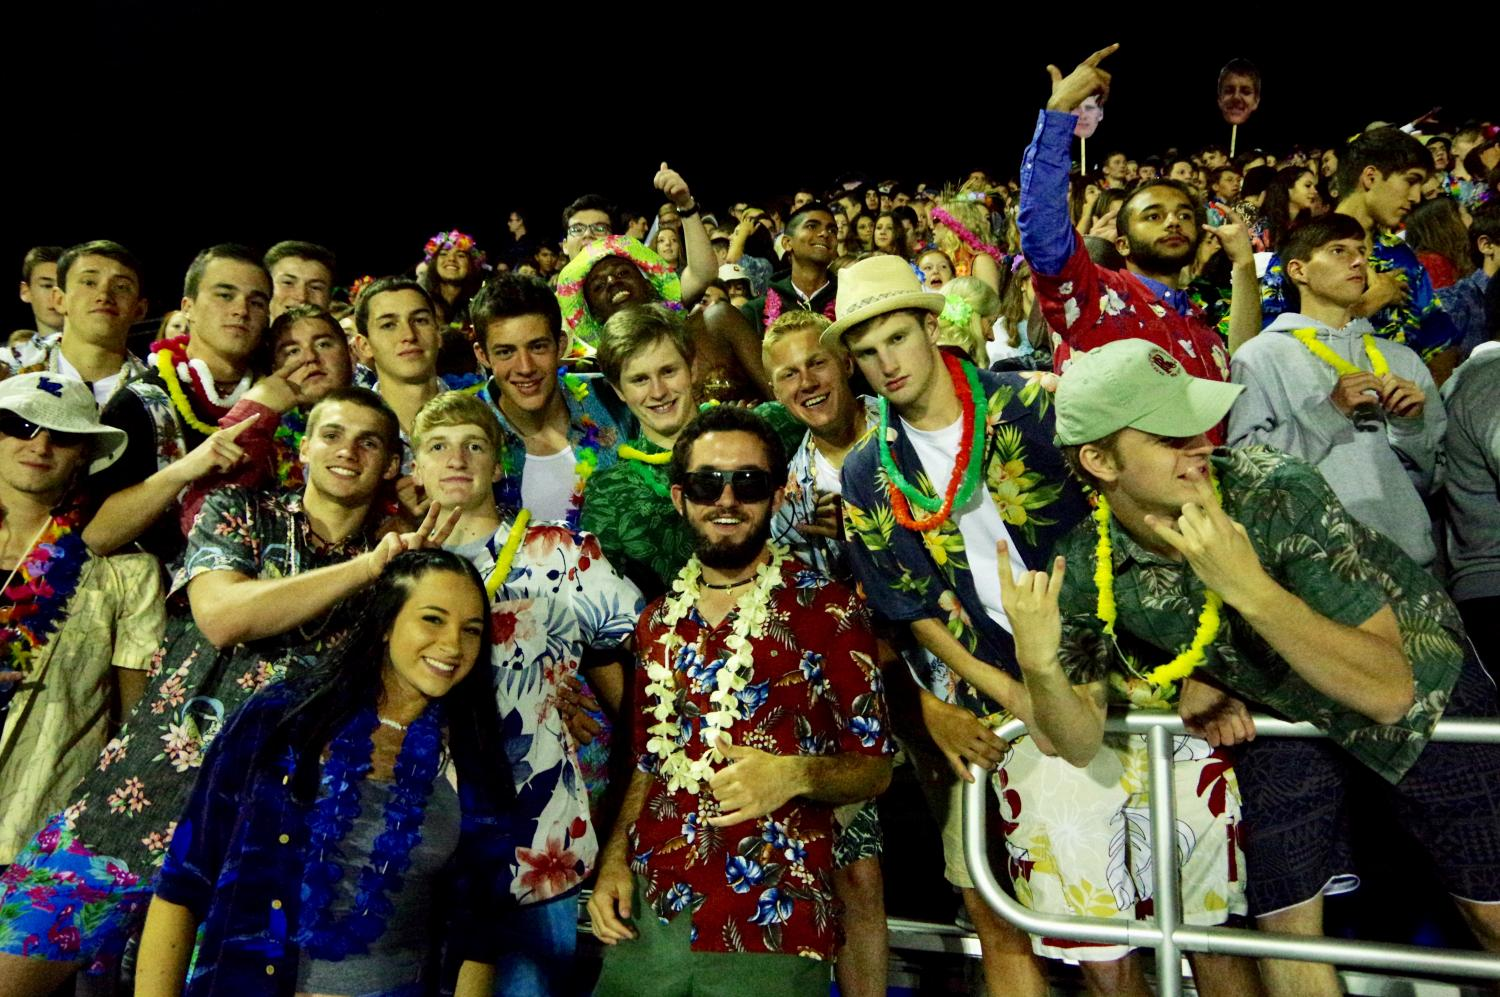 Student Section leaders Jordan Dickson, Will Ergastolo, and Ronan Kennedy join students in the stands to support the Bears at their football game.